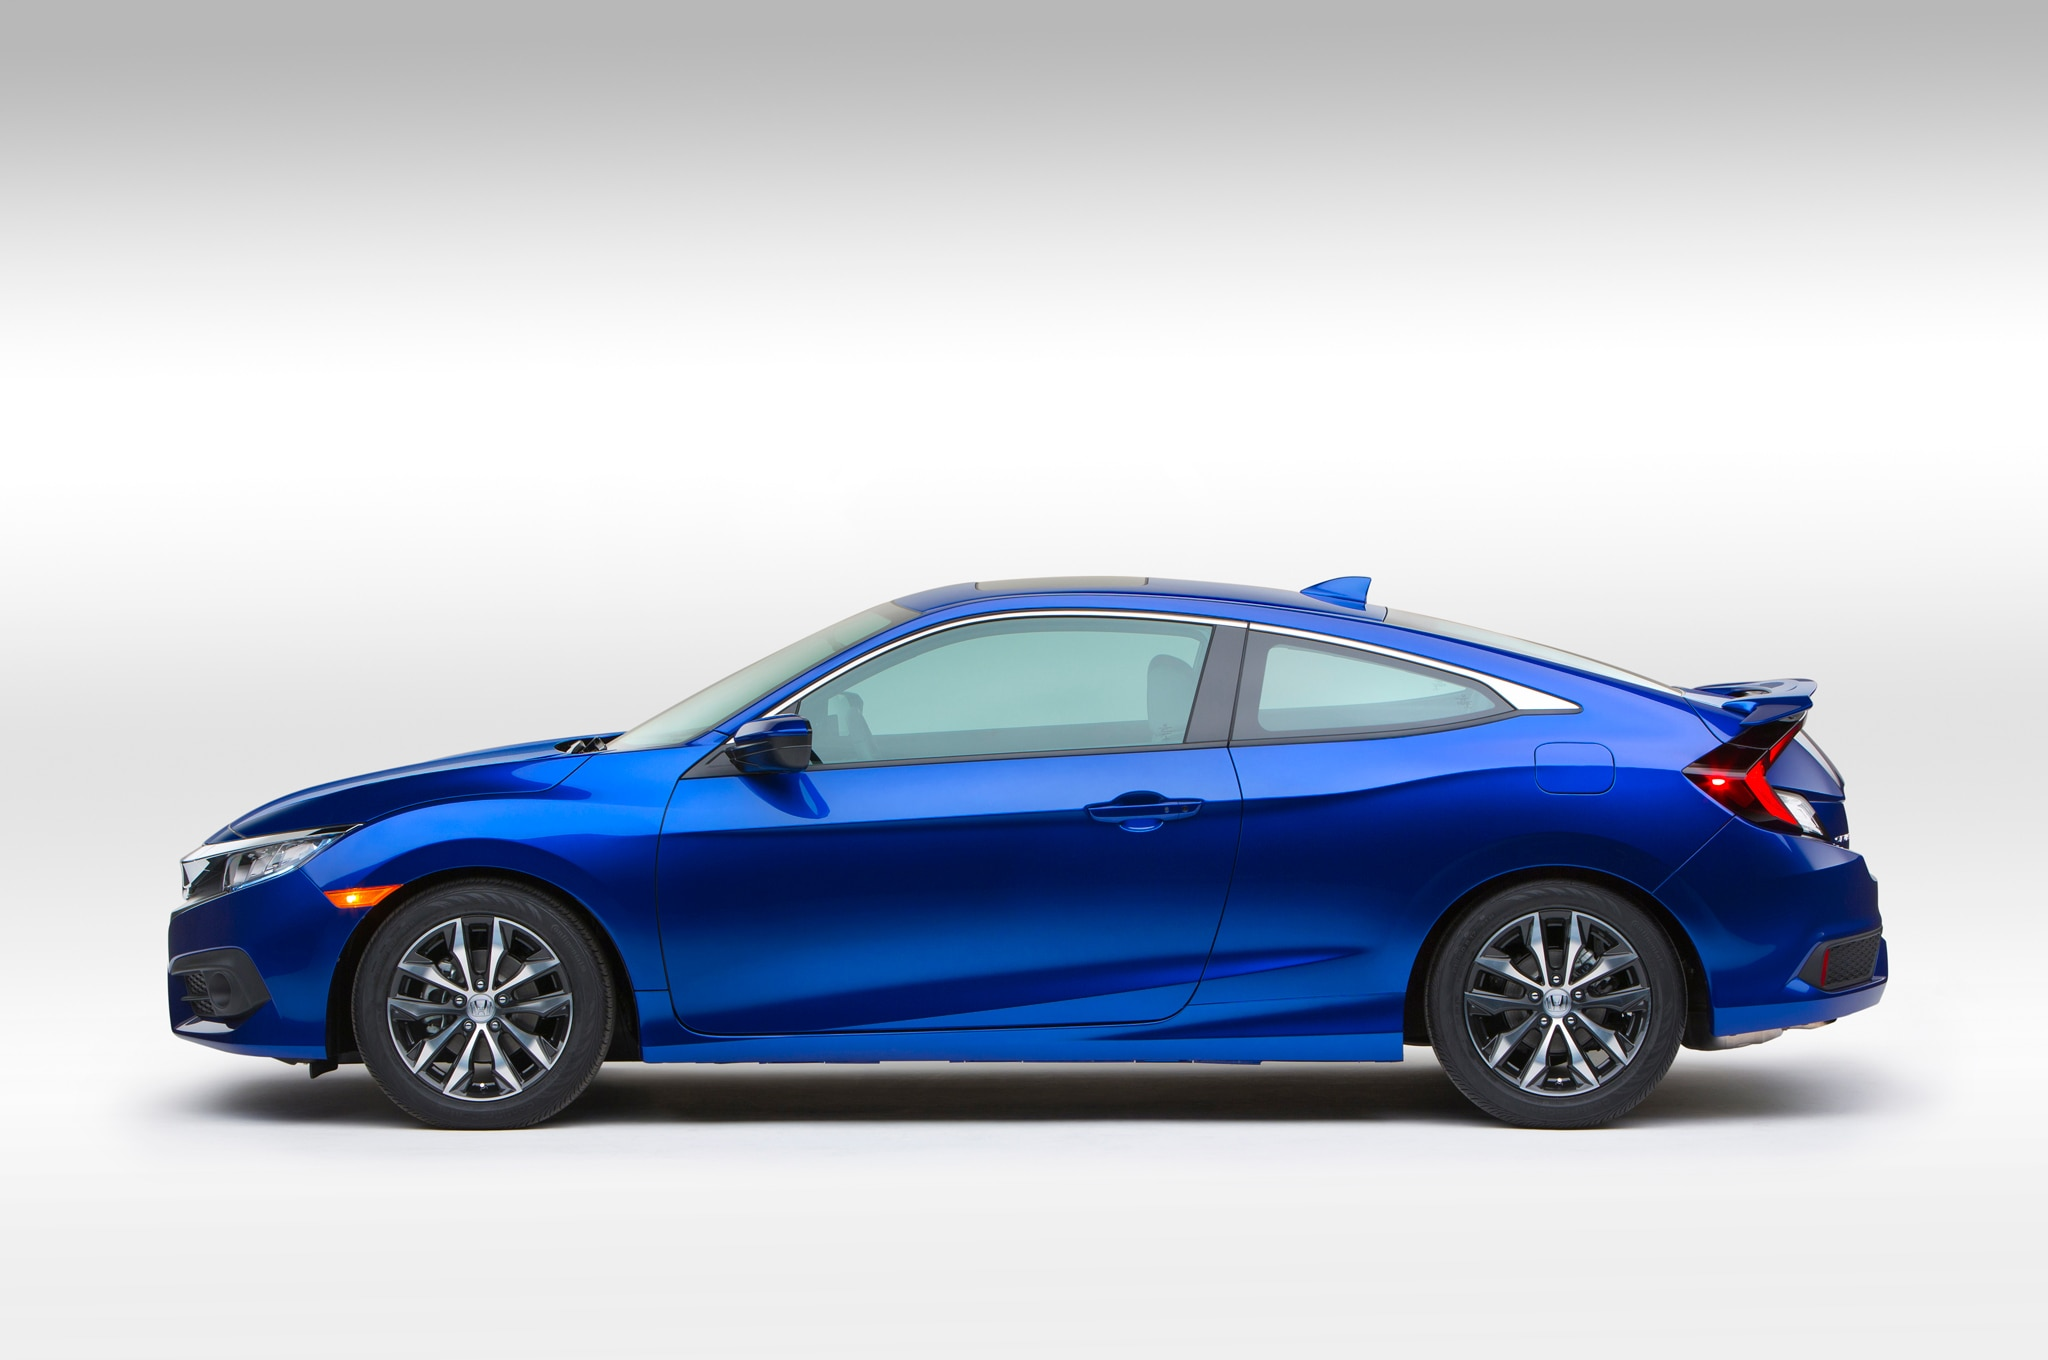 2016 honda civic coupe debuts with sportier styling for 2016 honda civic mpg